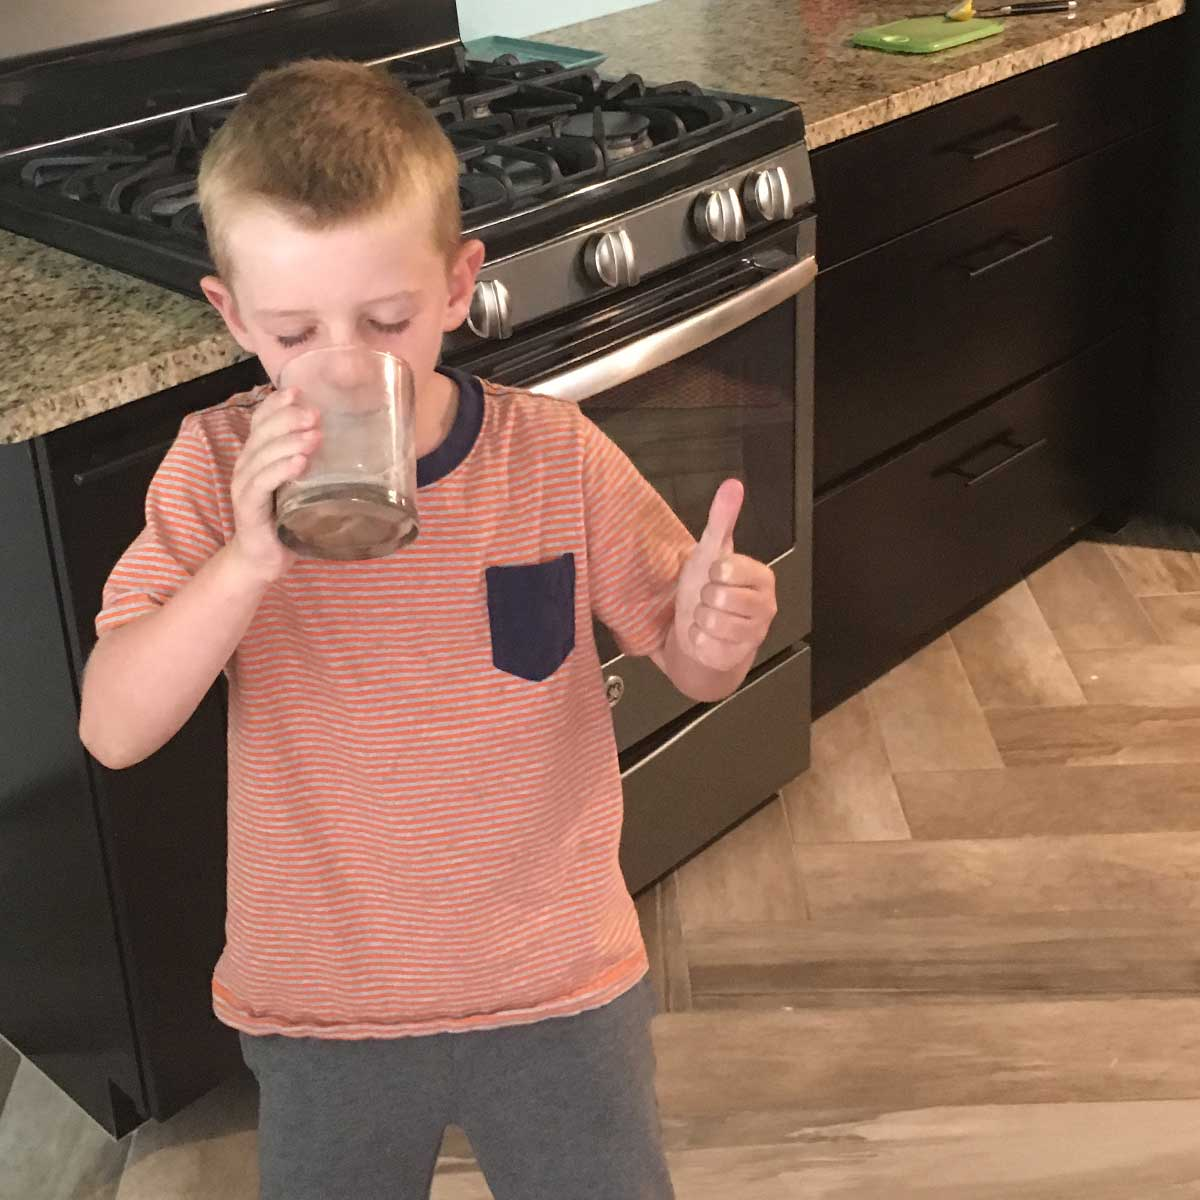 kid drinking milk and giving a thumbs up